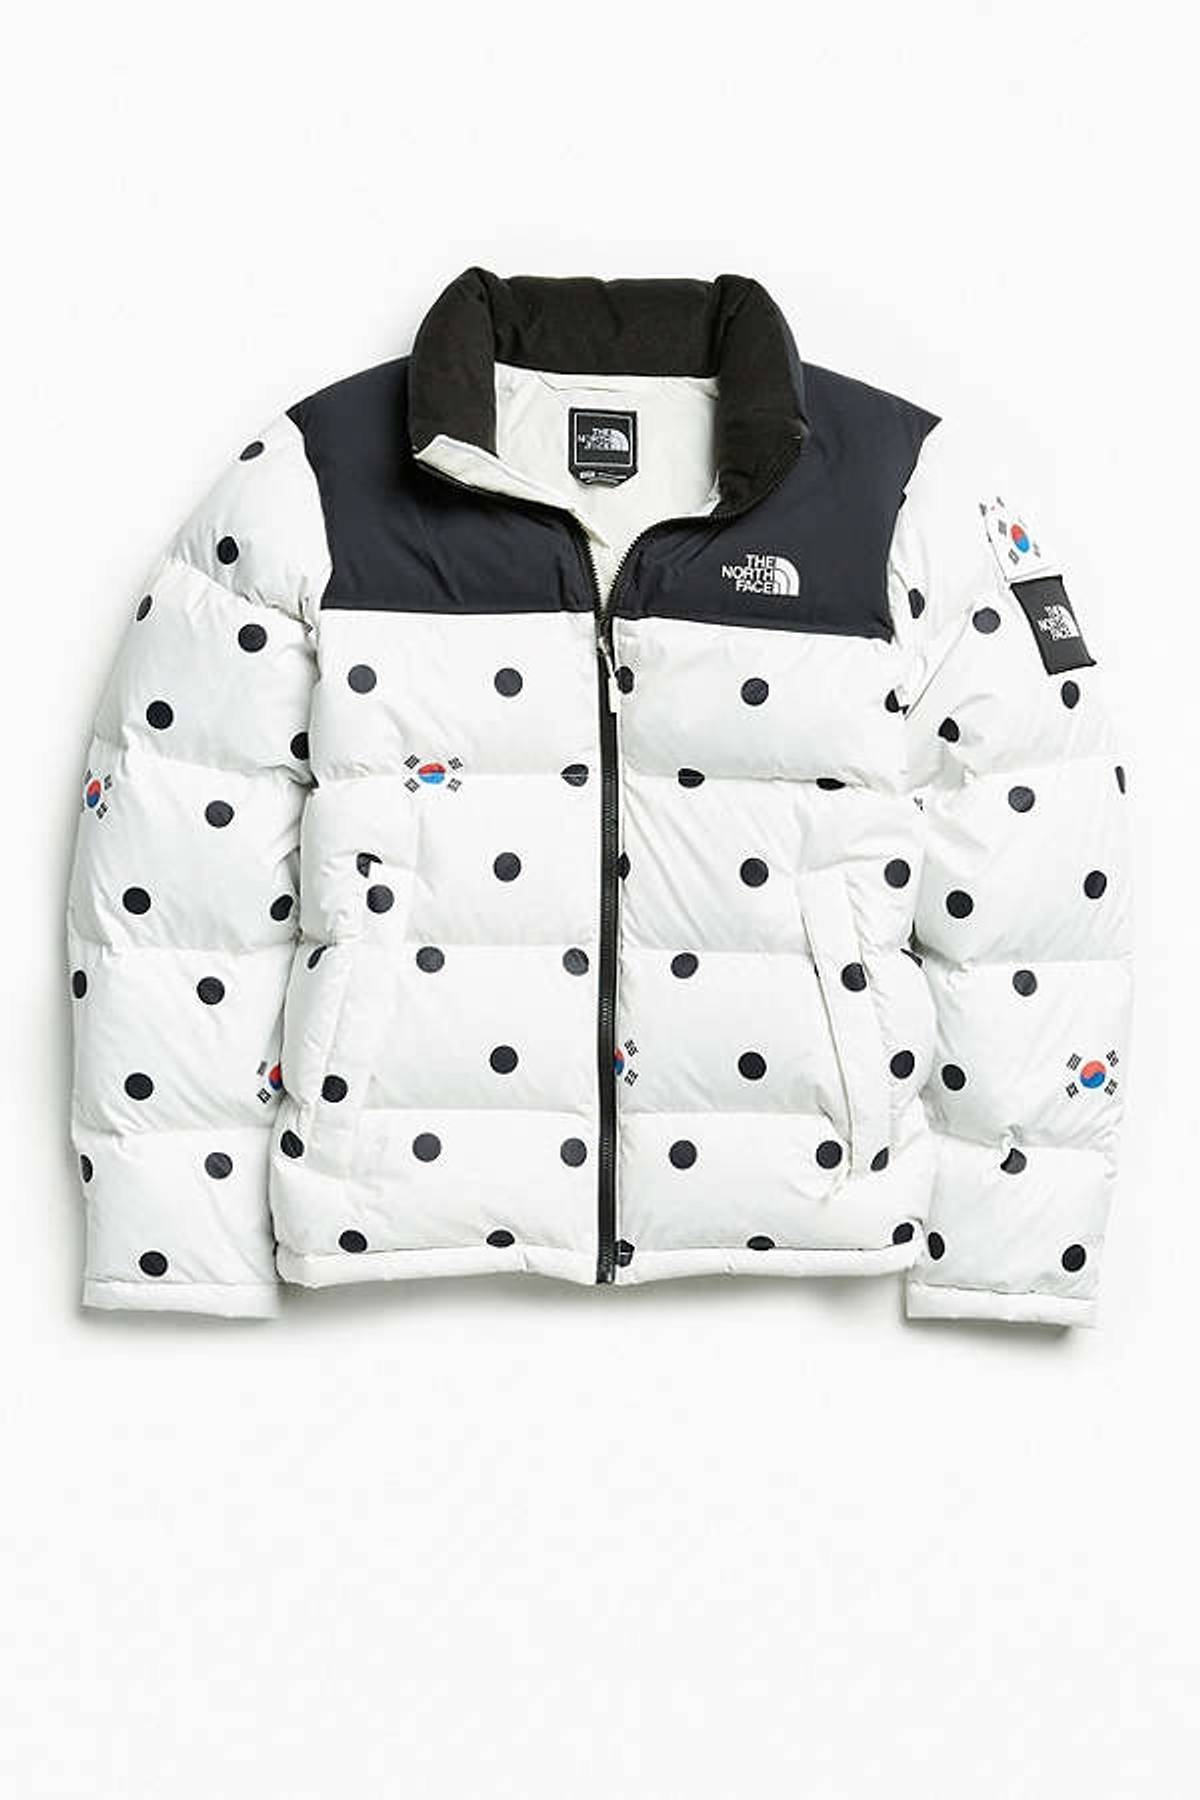 be5c650c6e The North Face The North Face International Collection IC Nuptse South  Korea Size m - Heavy Coats for Sale - Grailed